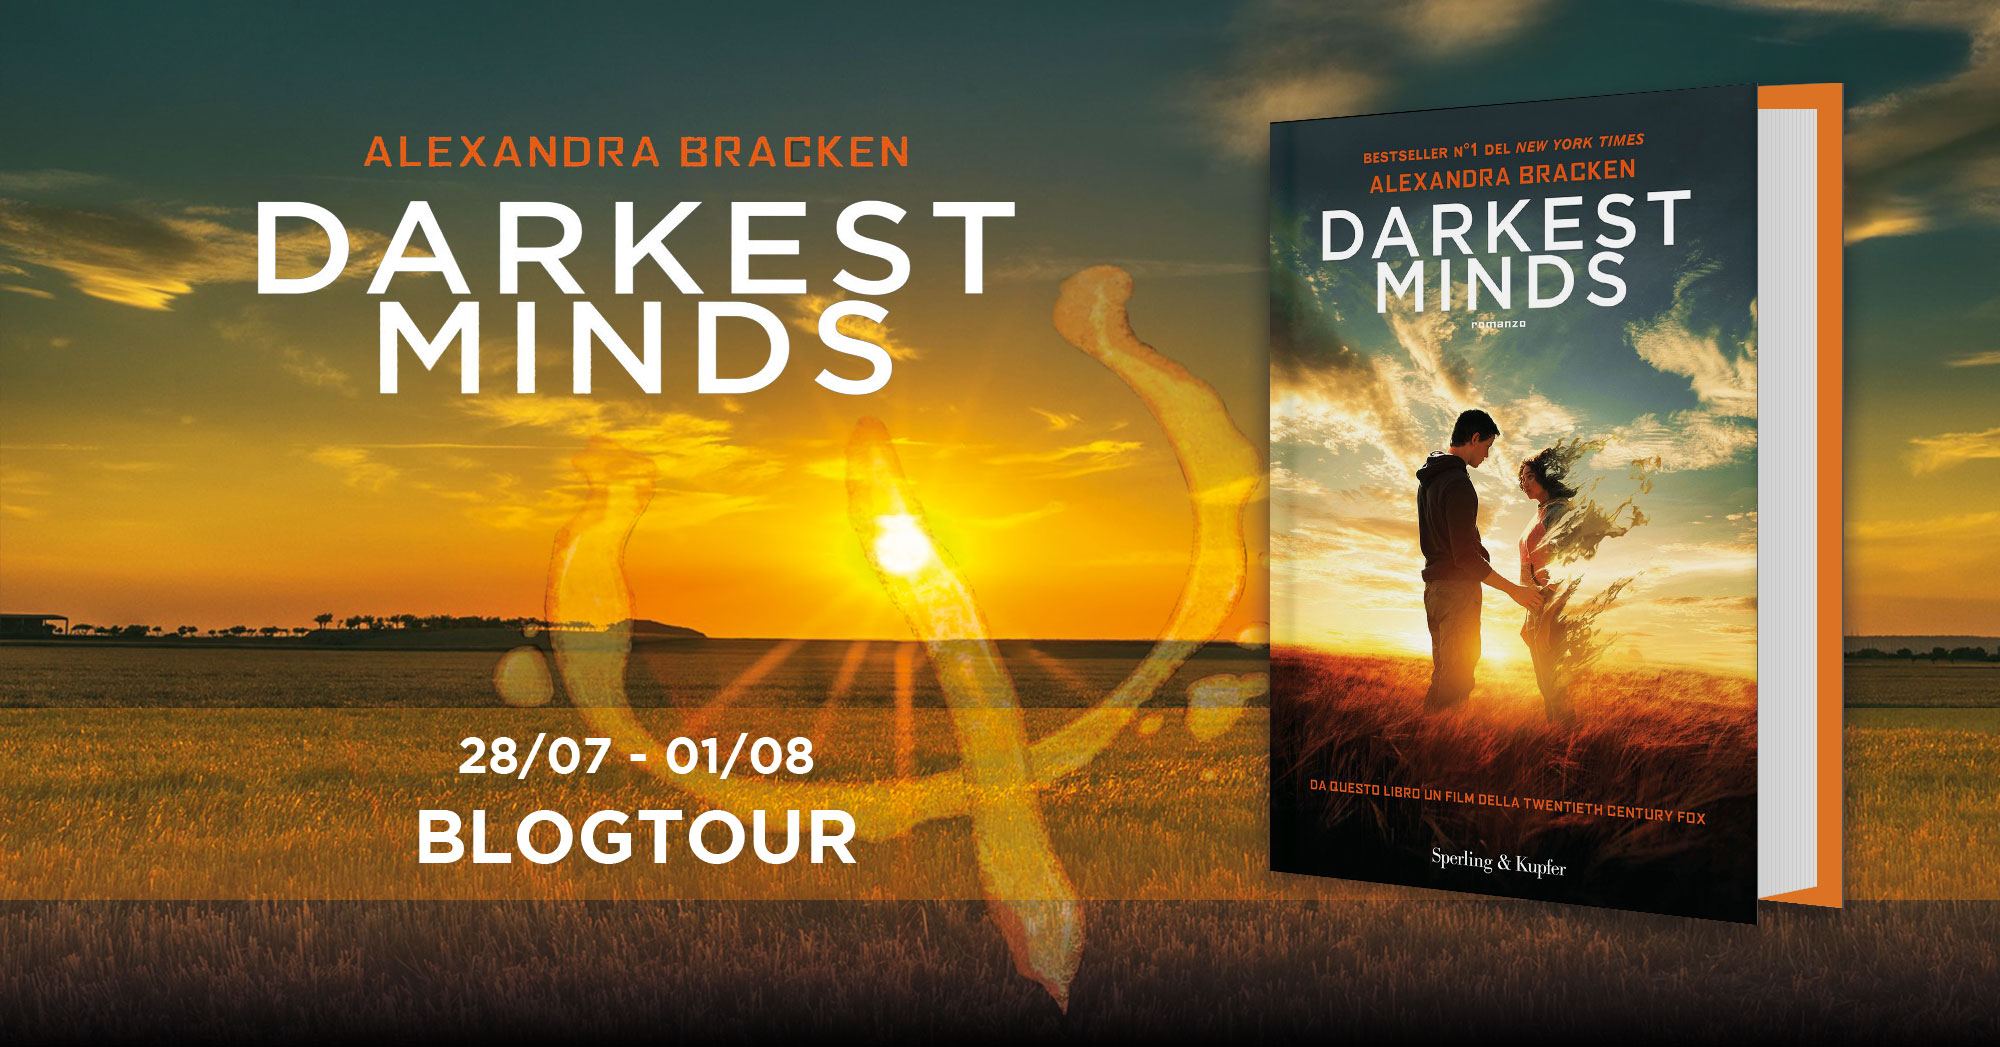 Darkest minds banner